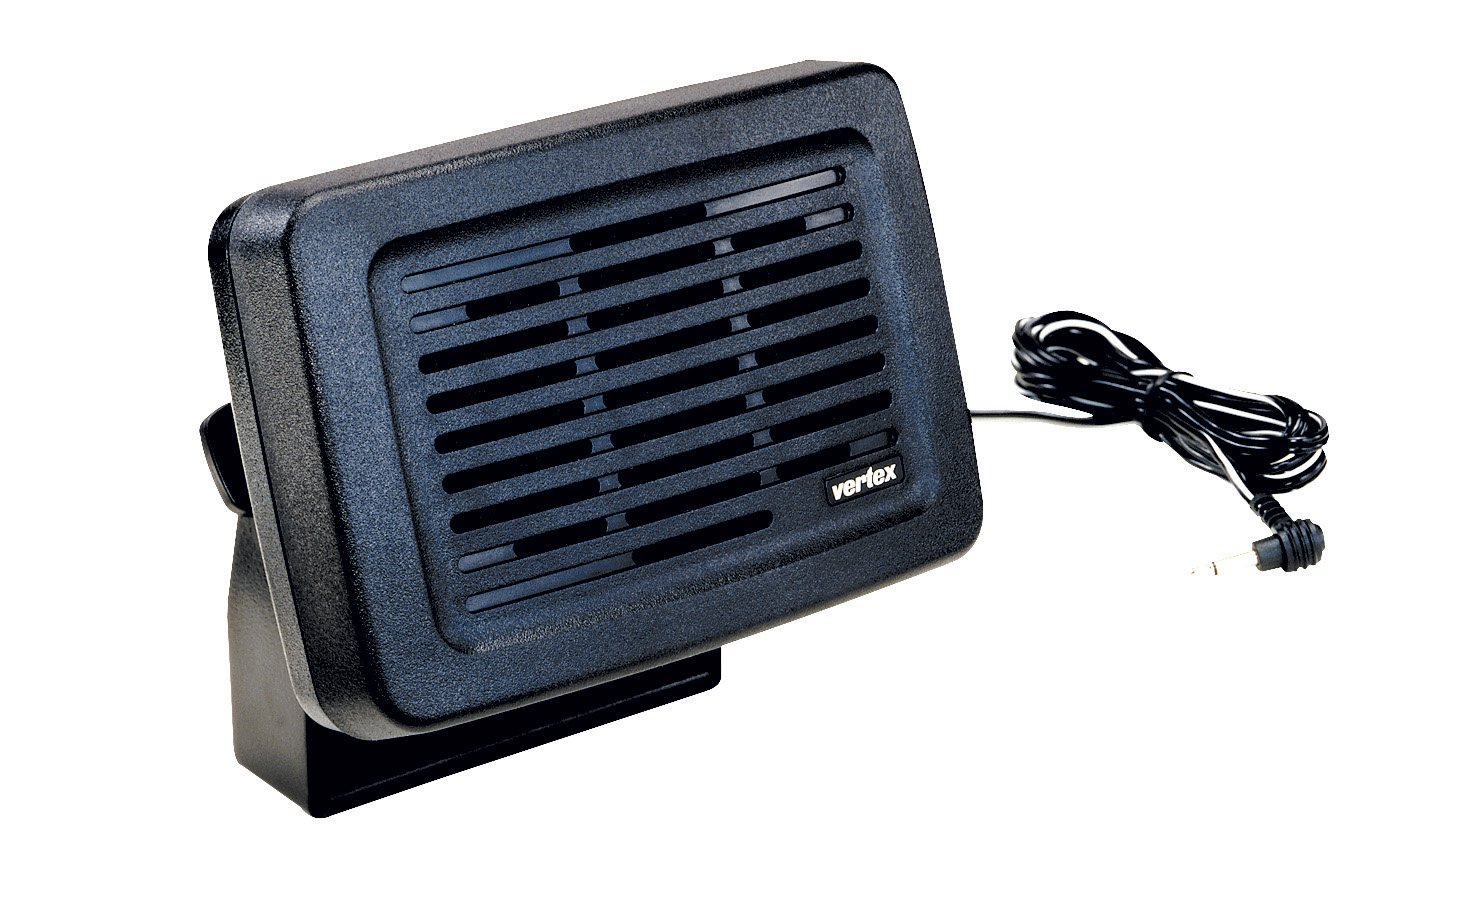 MLS-100 MLS100 Original Yaesu High Performance External Speaker by Yaesu